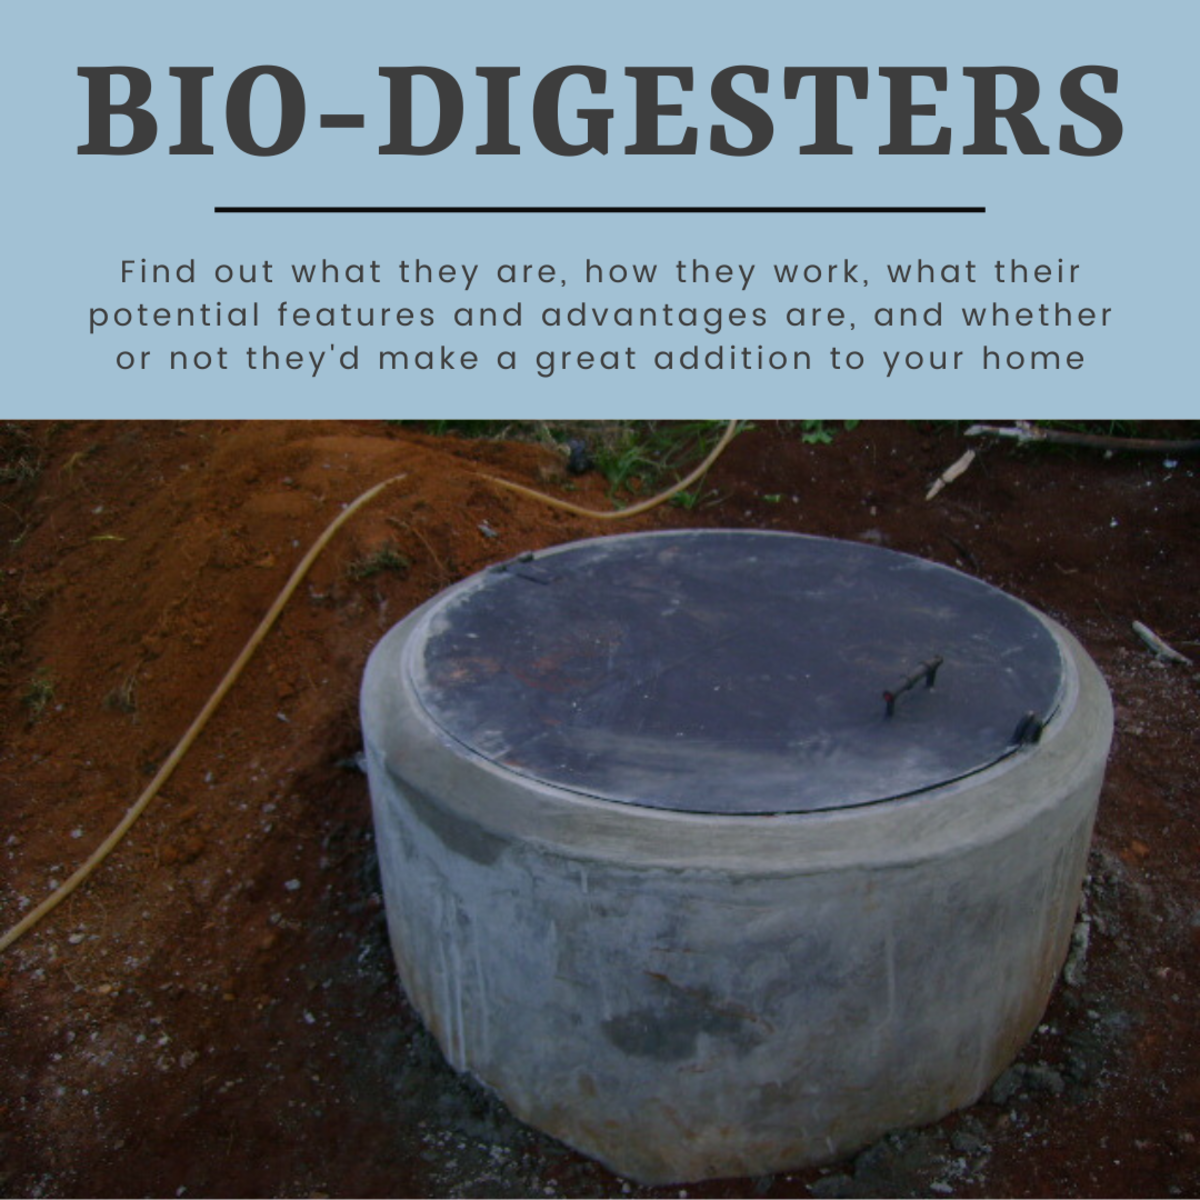 Everything you need about biodigesters: what they are, how they work, and possible features